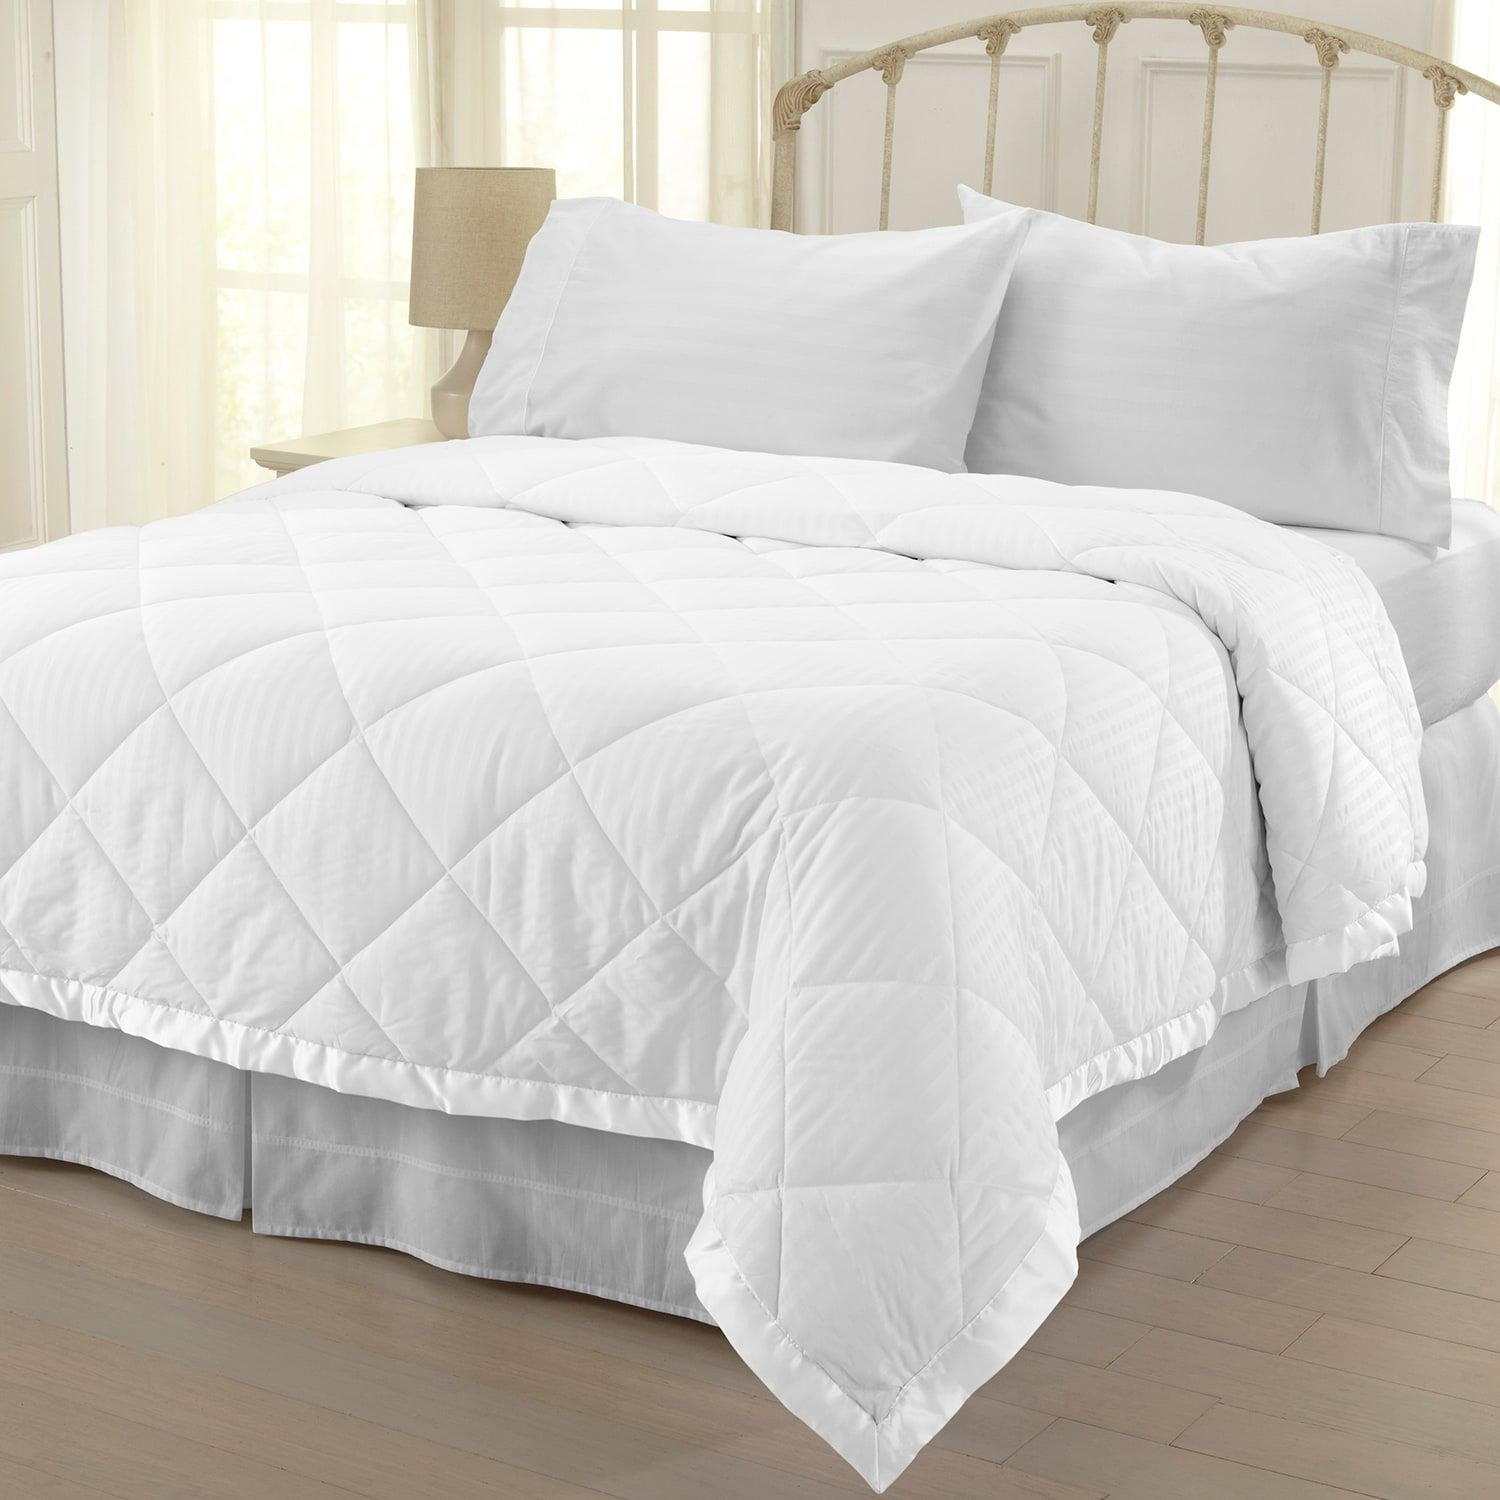 Romana Collection Luxurious Down Alternative Blanket Collection